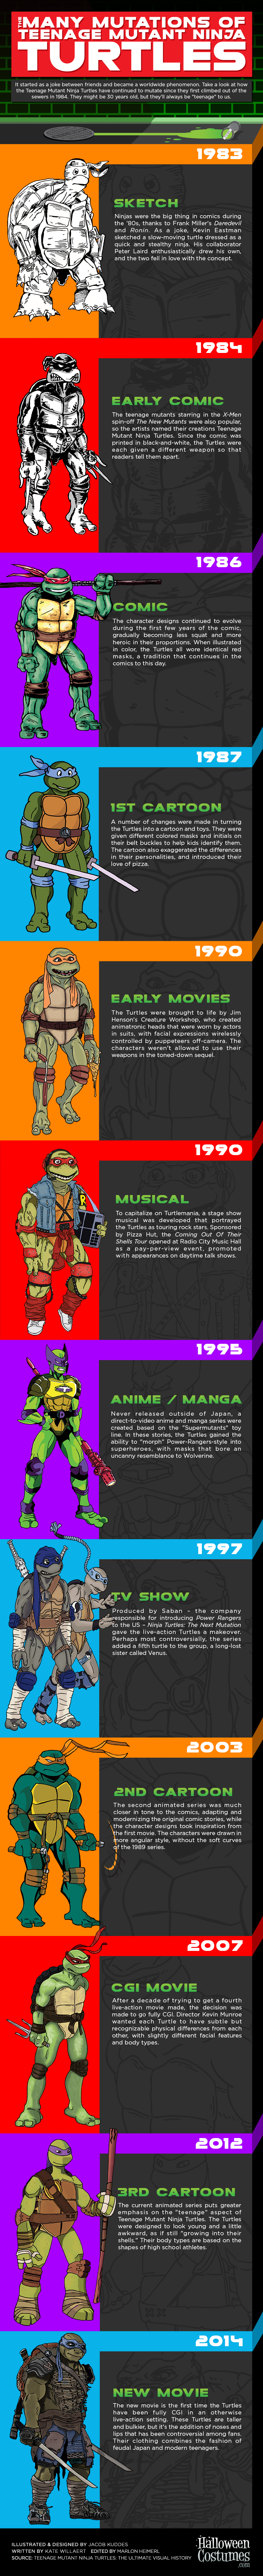 Teenage Mutant Ninja Turtles Infographic